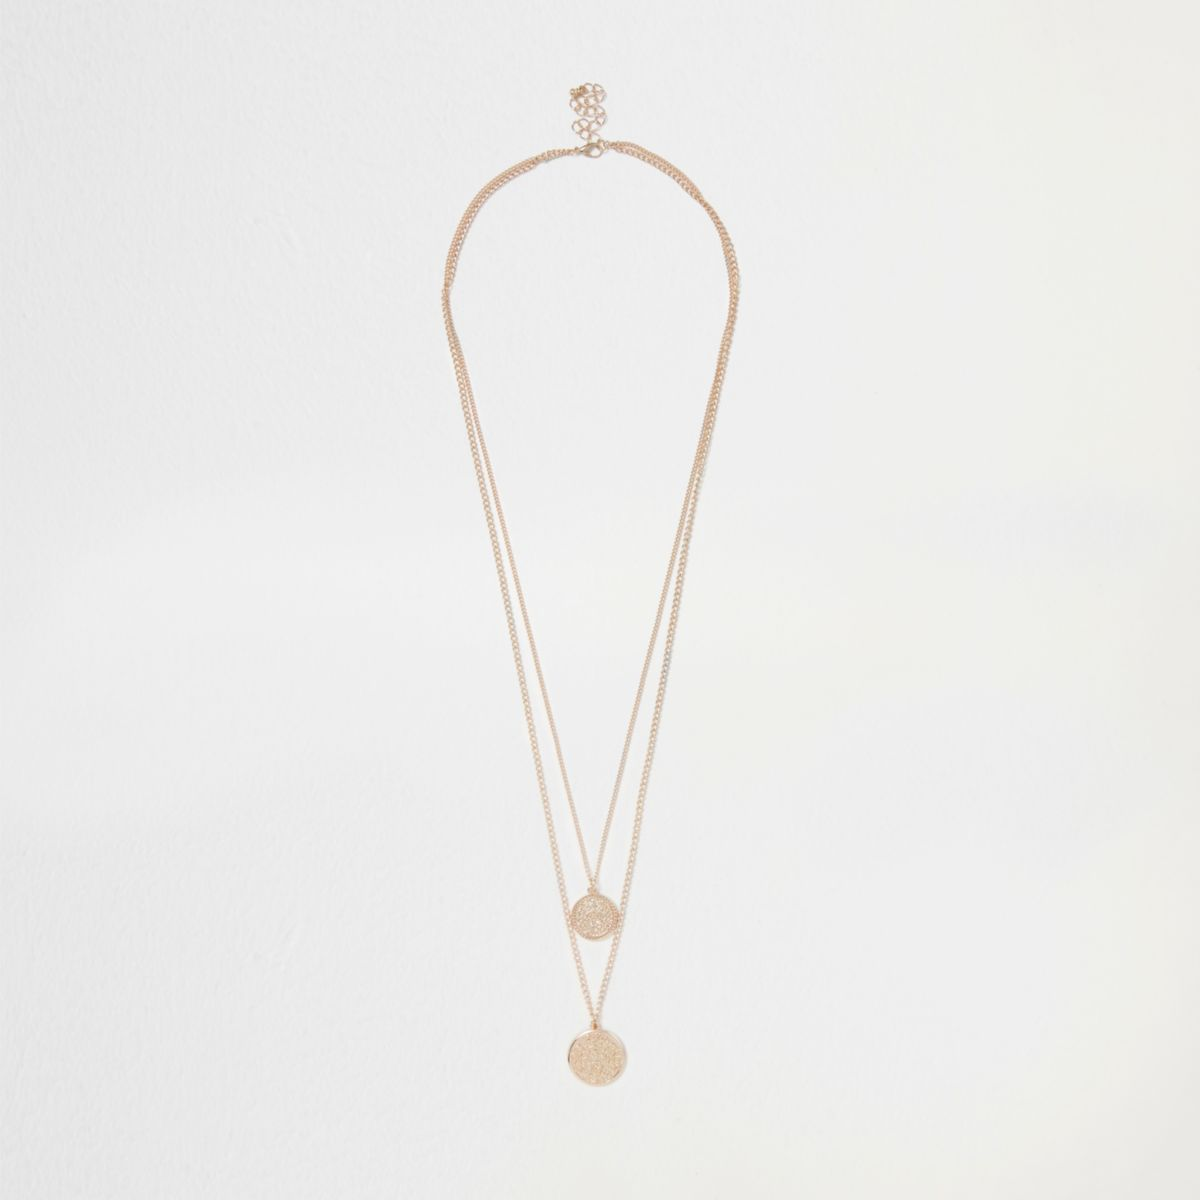 Gold tone multilayer coin necklace